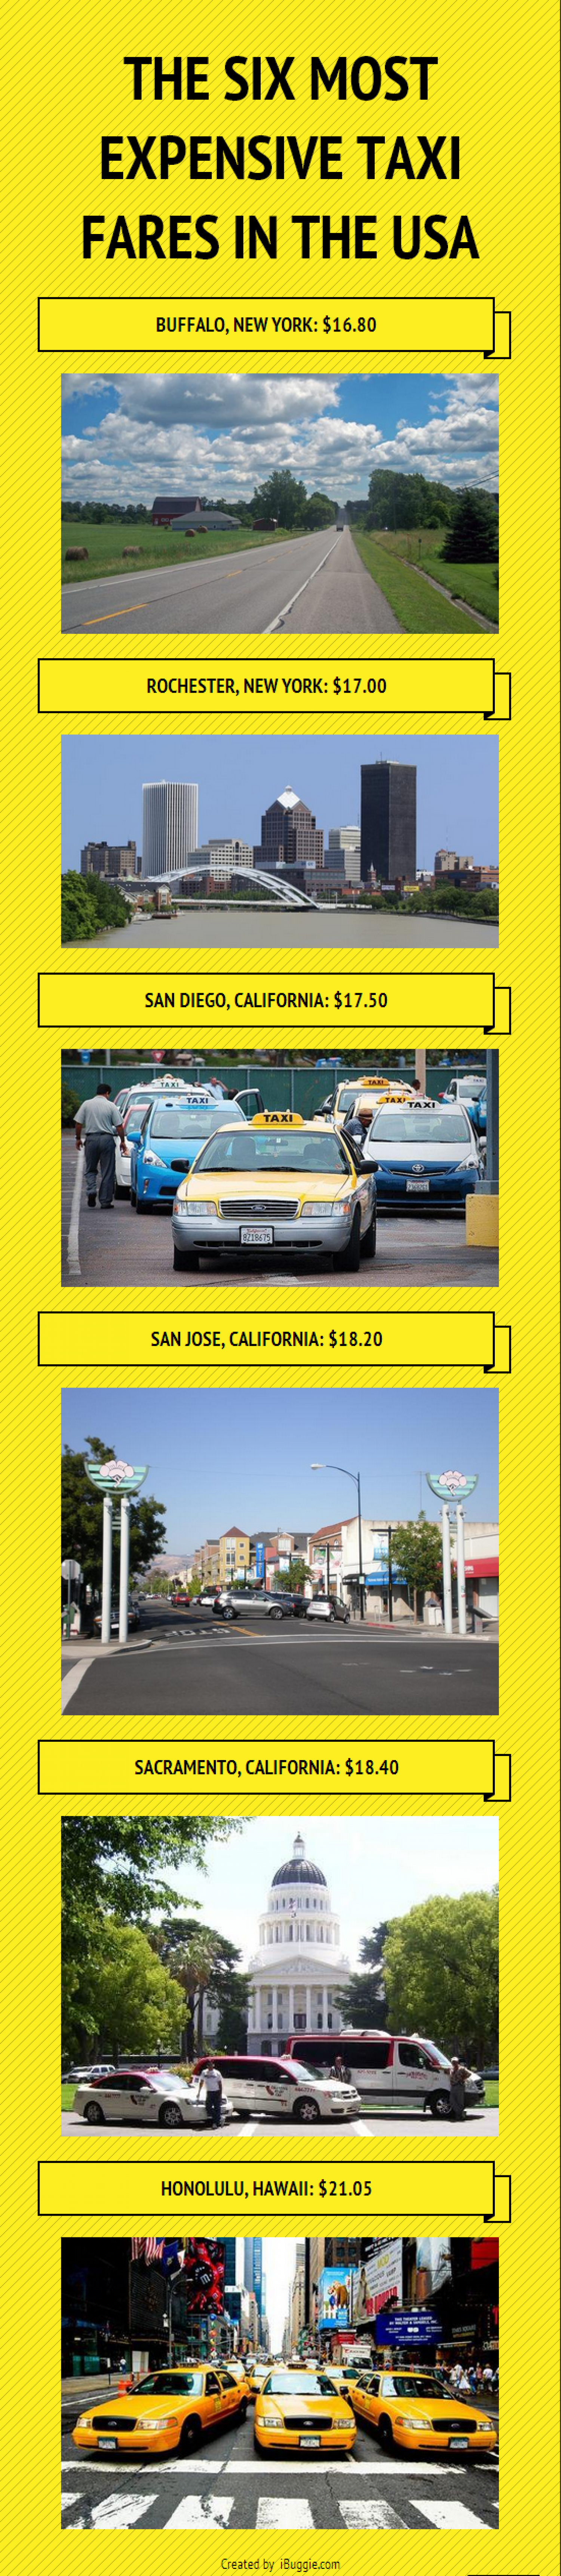 The Six Most Expensive Taxi Fares in the USA Infographic